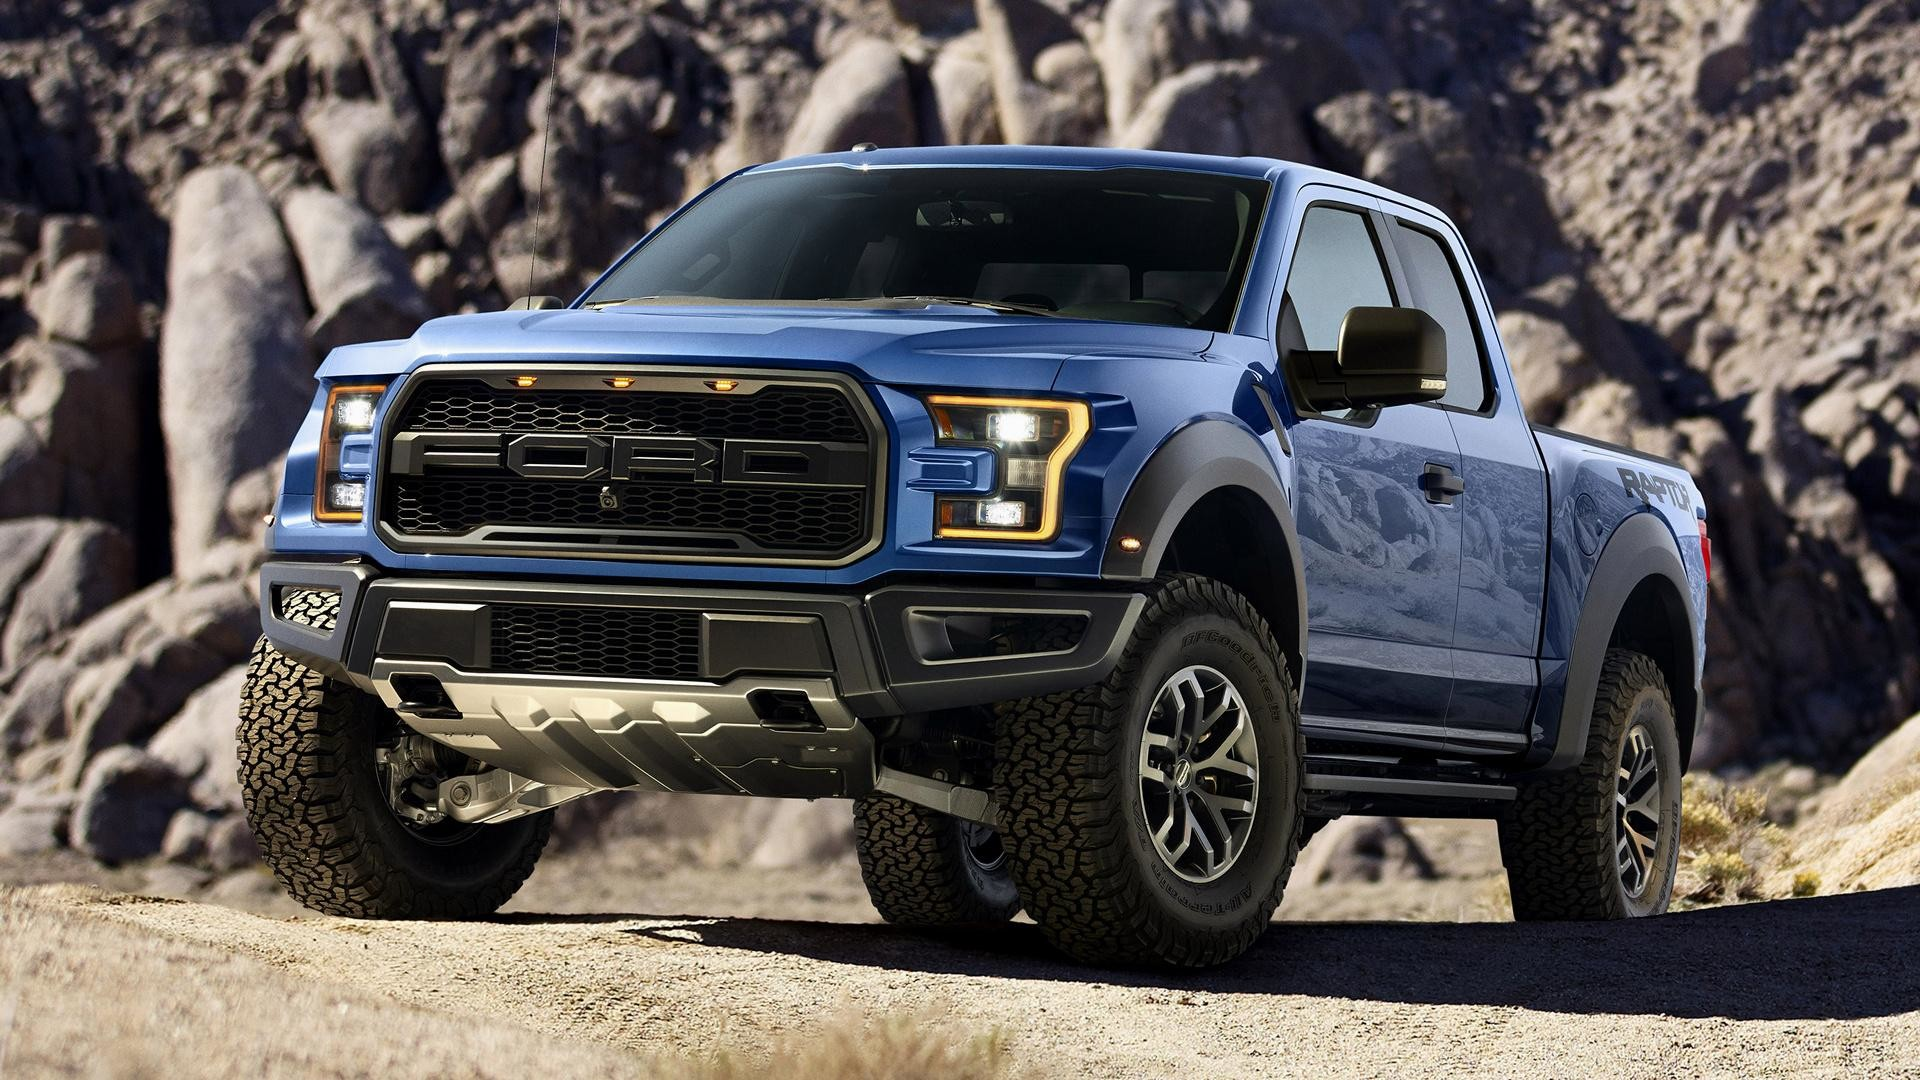 wallpaper.wiki-Ford-f-150-raptor-supercab-wallpapers-